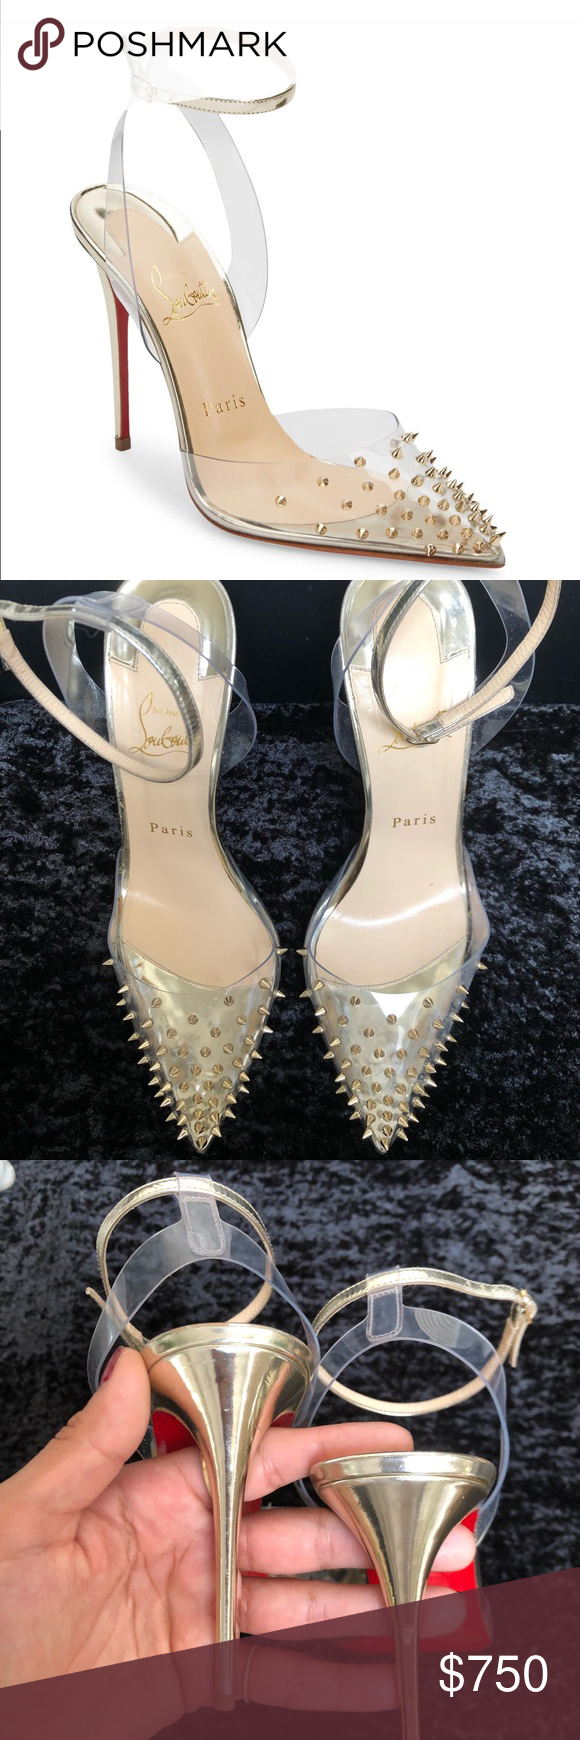 dddf35176 SPIKOO 100 PVC/SPECCHIO TRANSP/LIGHT GOLD 😍 Size- 39 Used Purchased at  Saks Fifth Ave. Christian Louboutin Christian Louboutin Shoes Heels